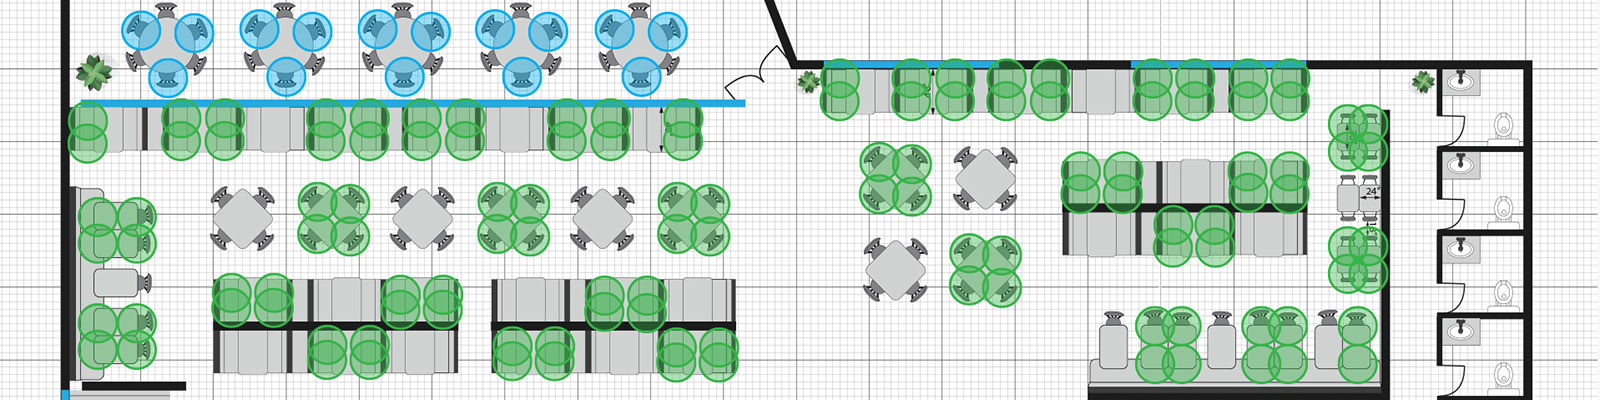 Covid-19 Compliant Seating Layout